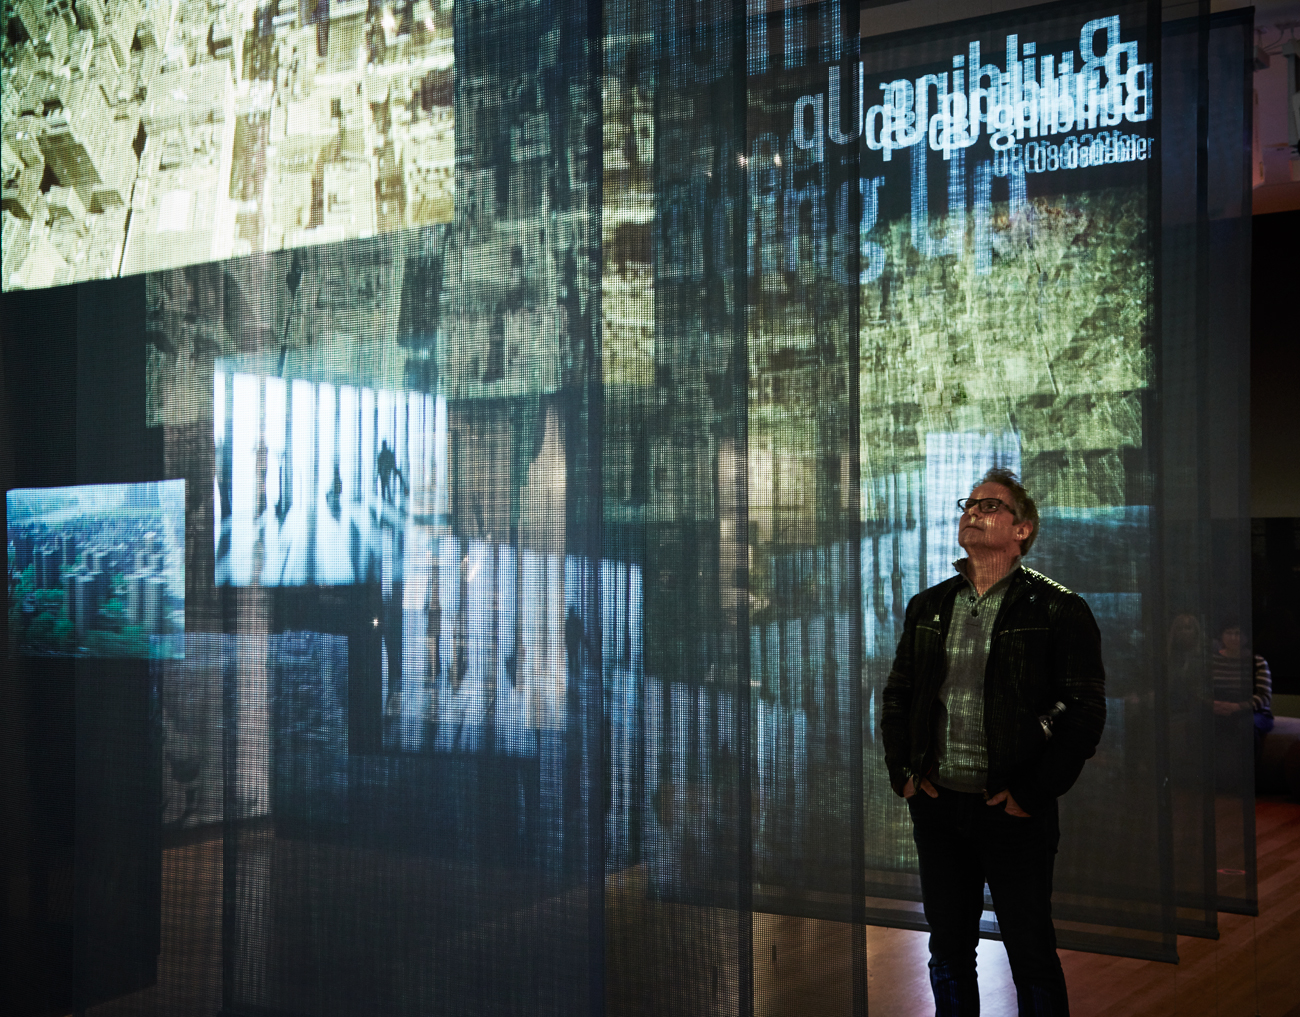 A visitor stands in-between sheer panels as a video projection plays across them